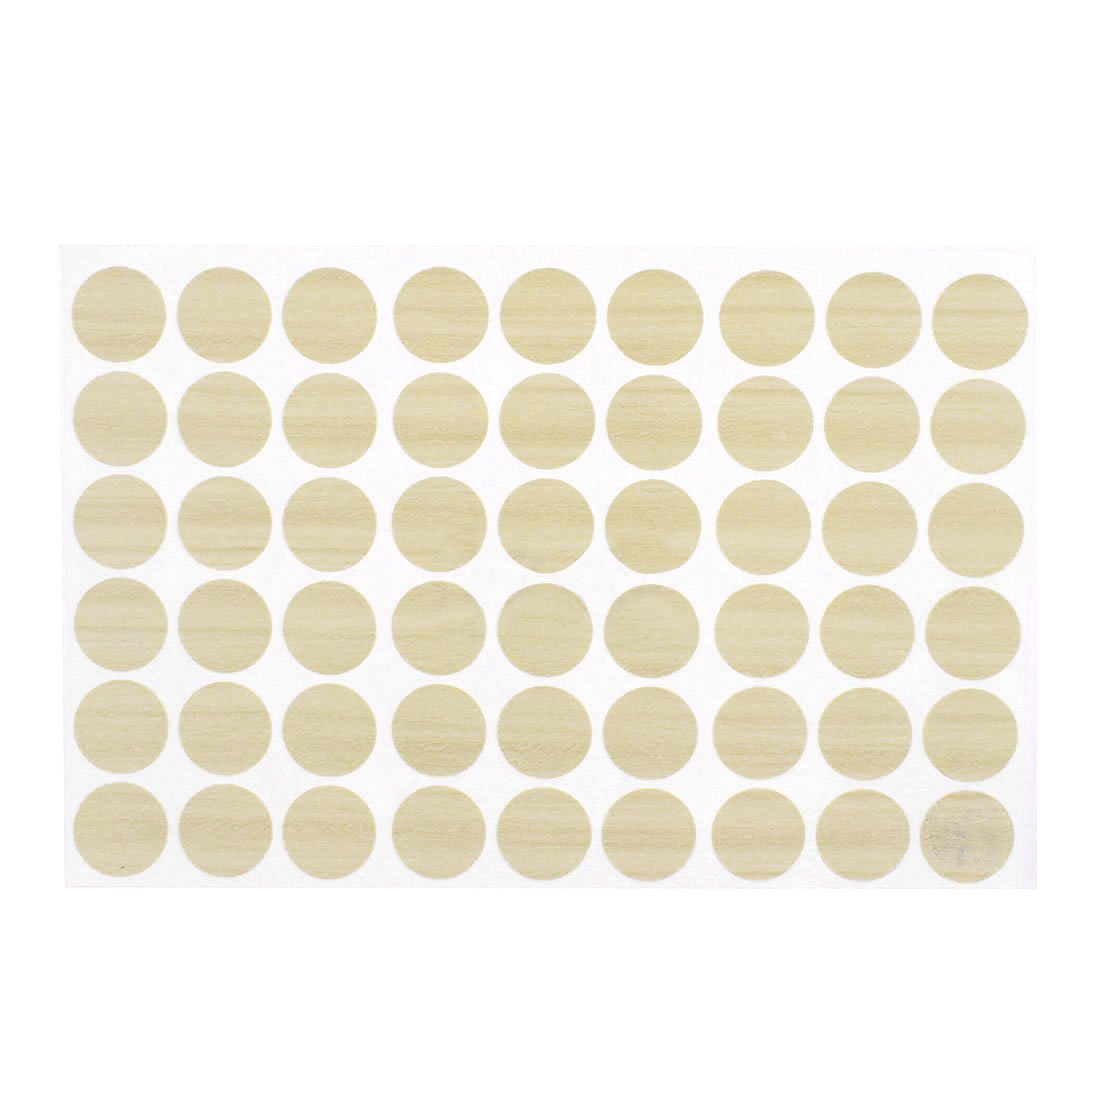 Home Furniture Plastic Self-adhesive Screw Covers Caps Stickers Off White 54 in 1